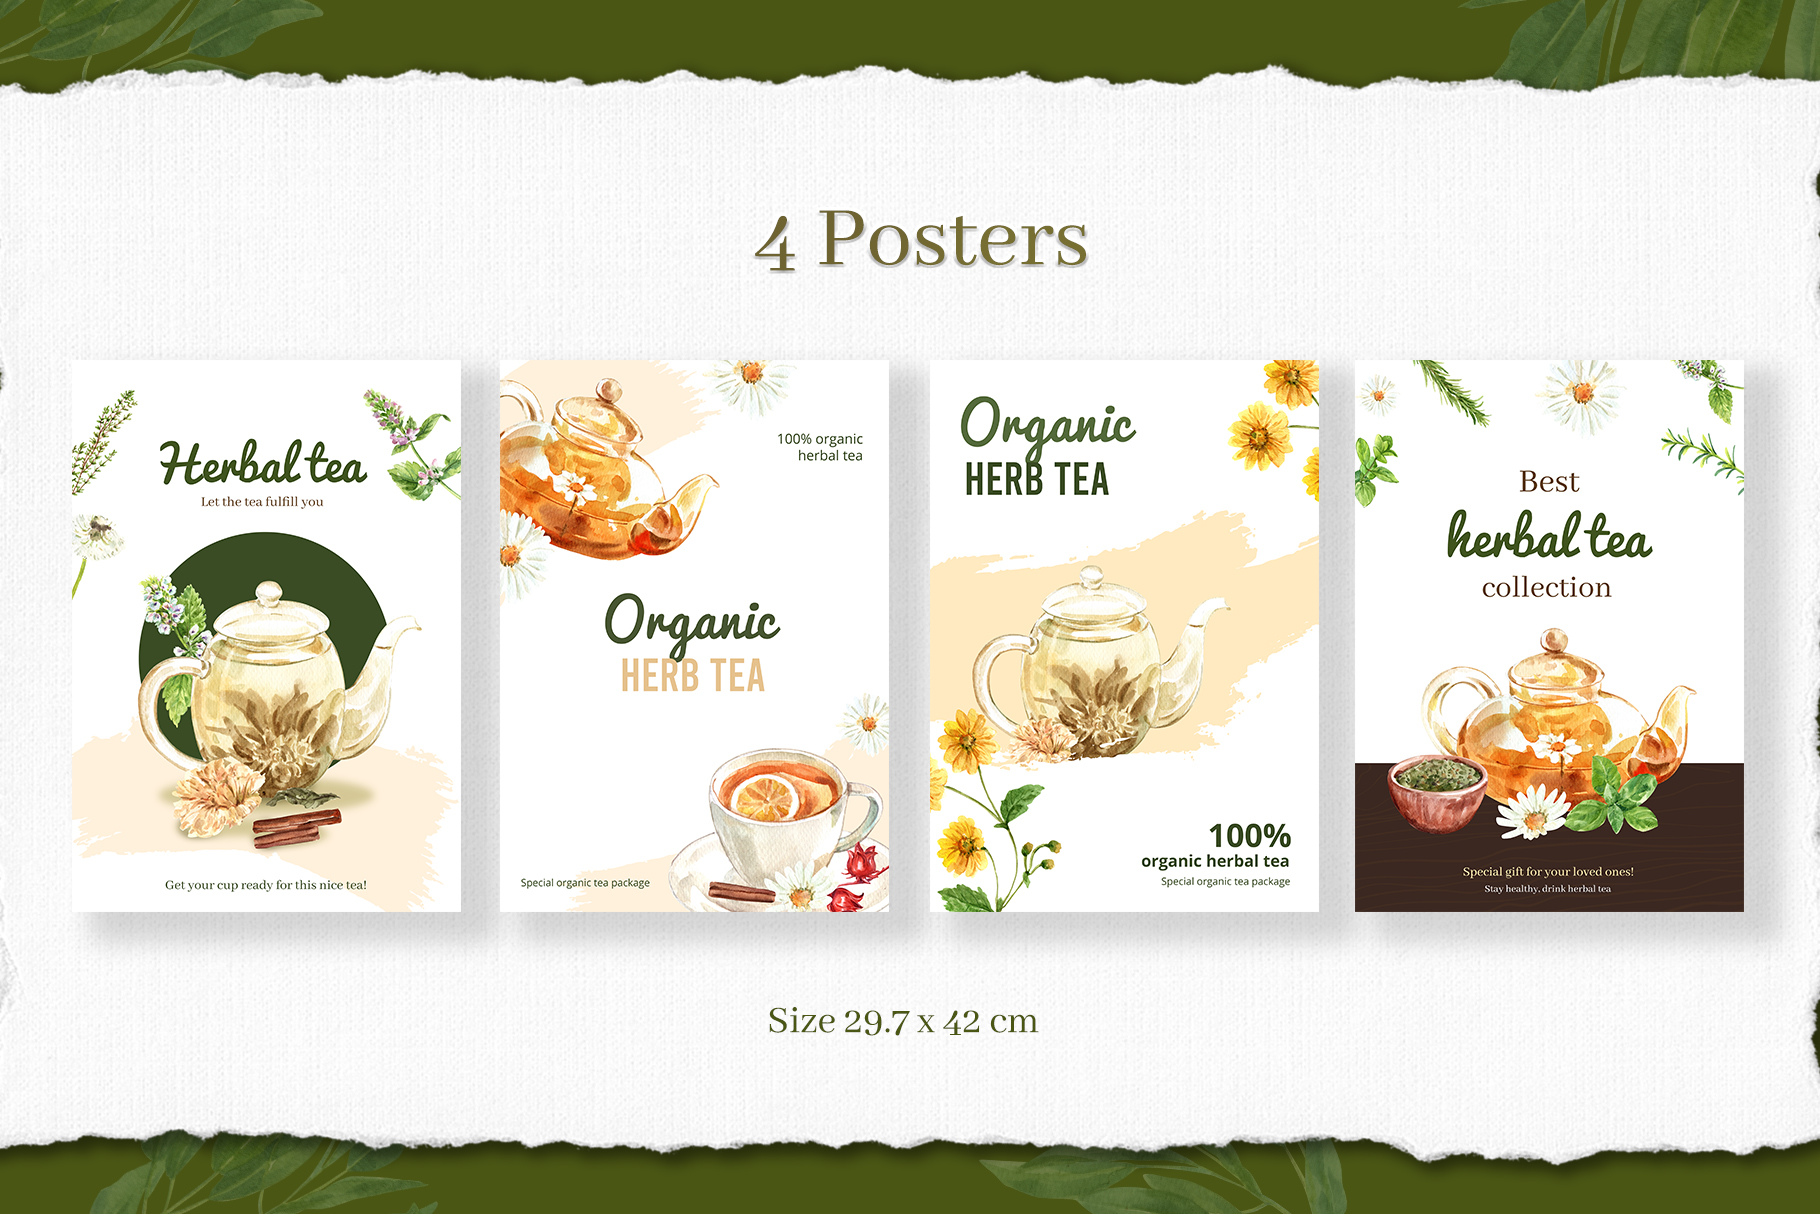 Tea Time with Herbal Tea for Health Watercolor Set